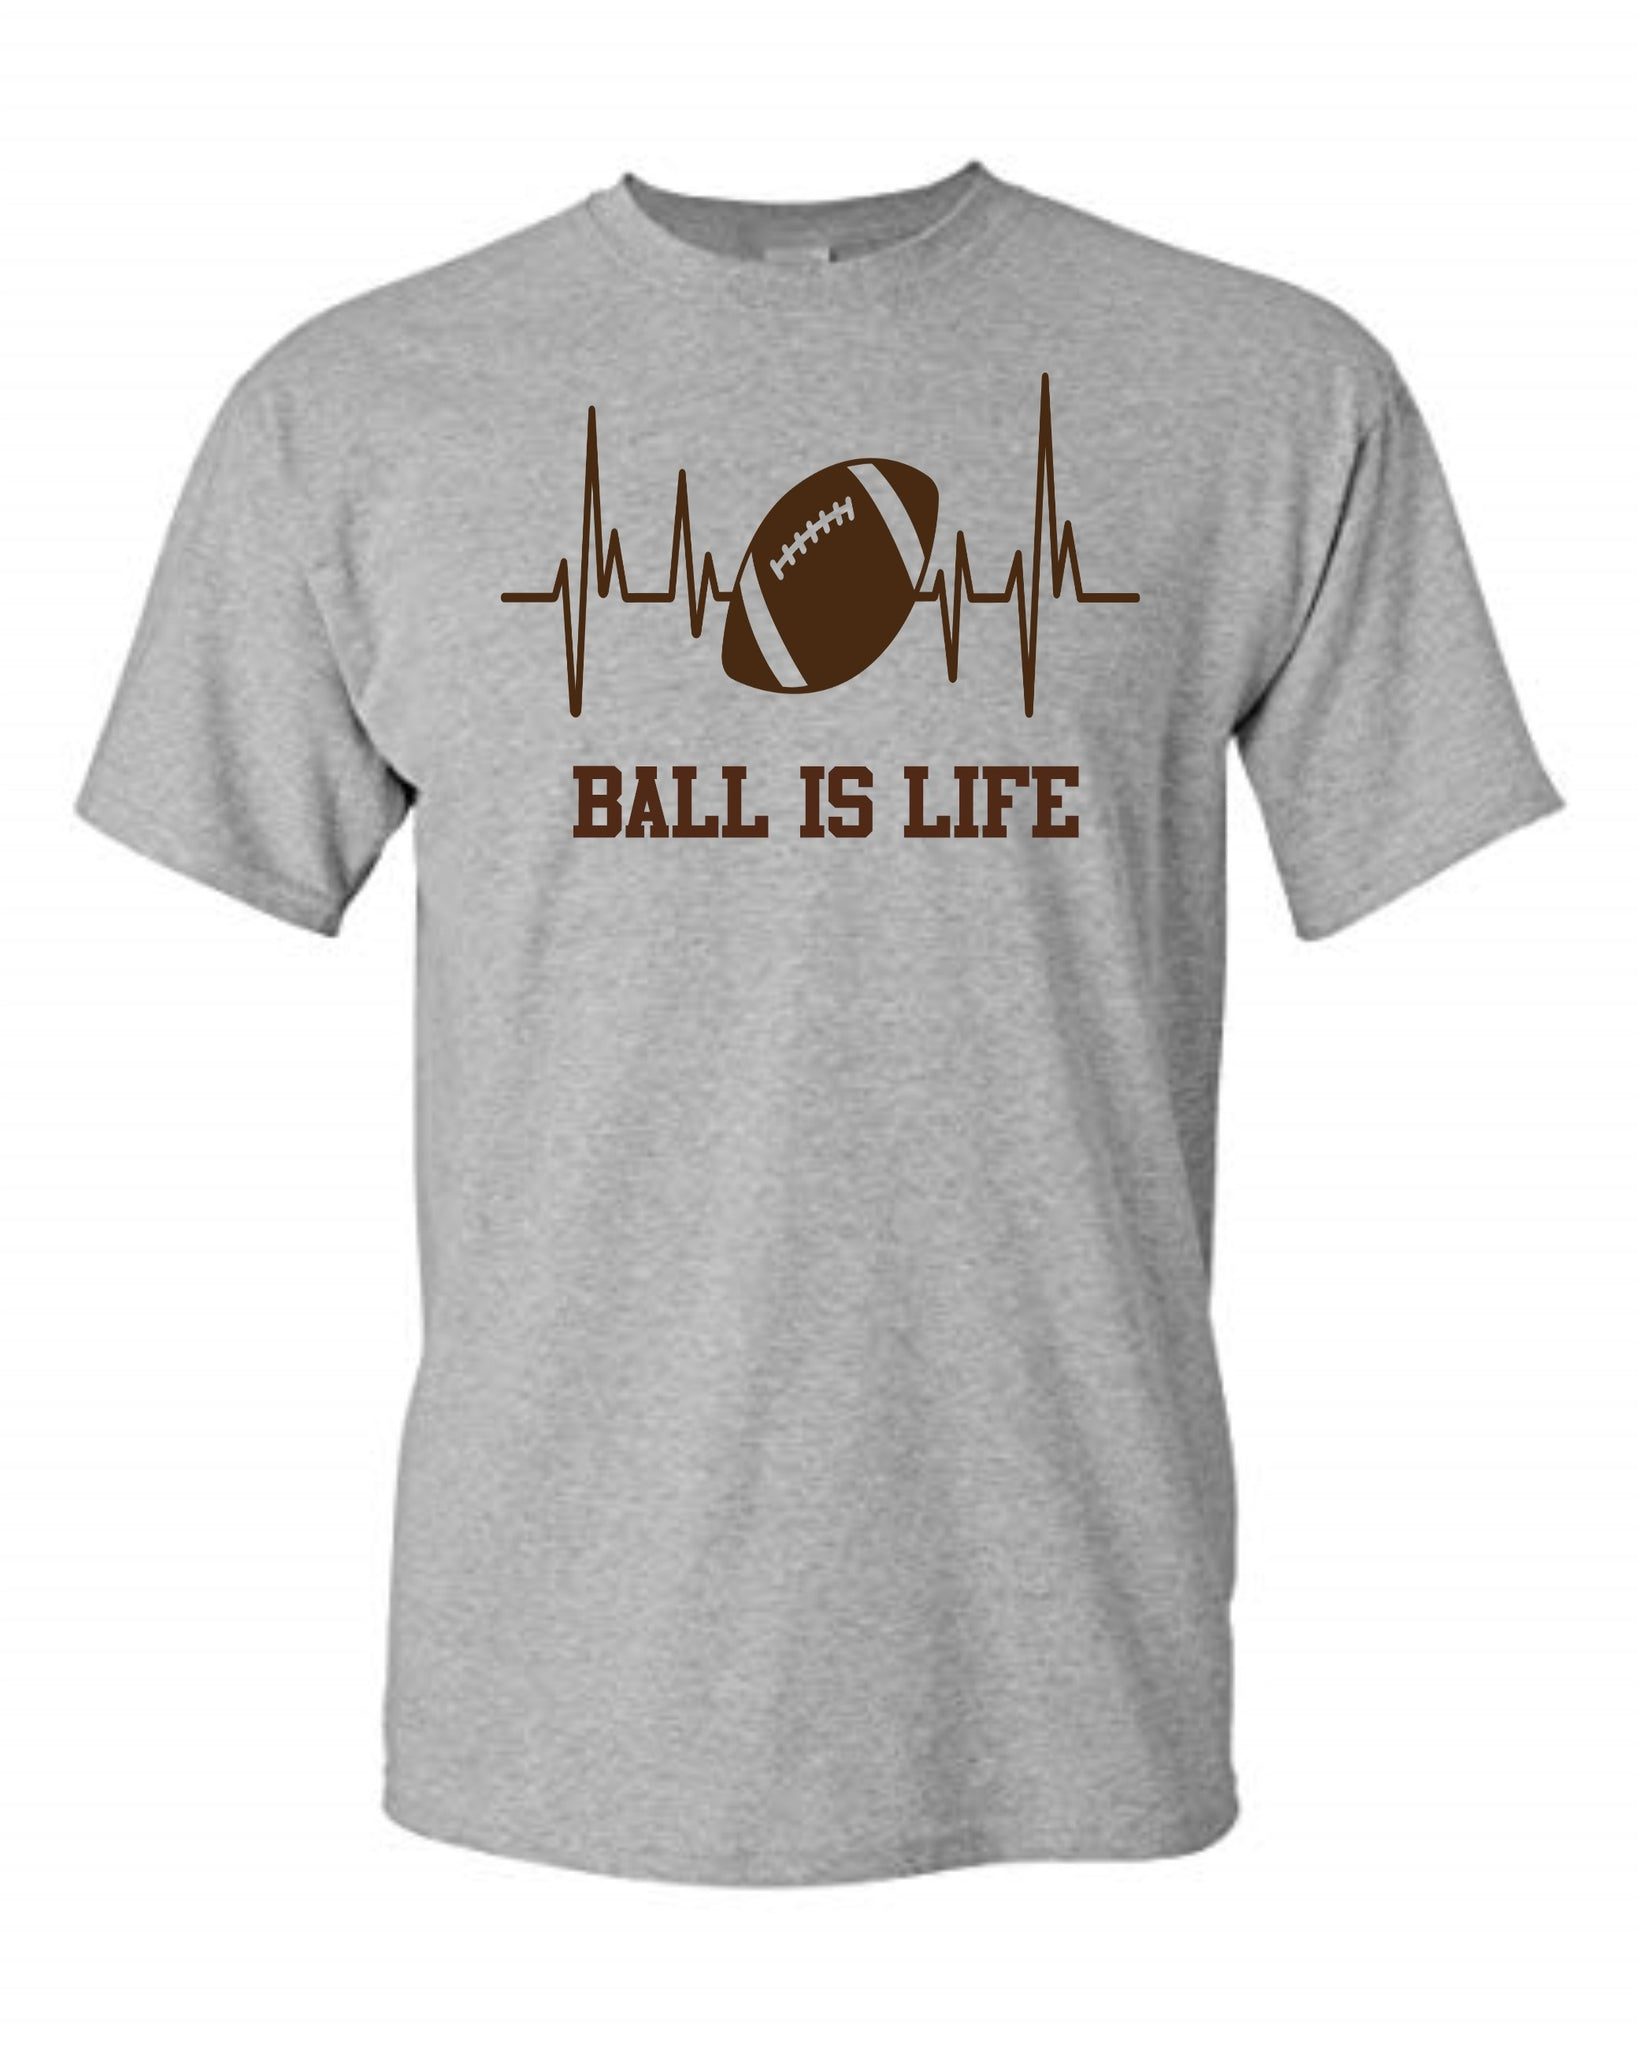 Ball Is Life - Tee Size Me